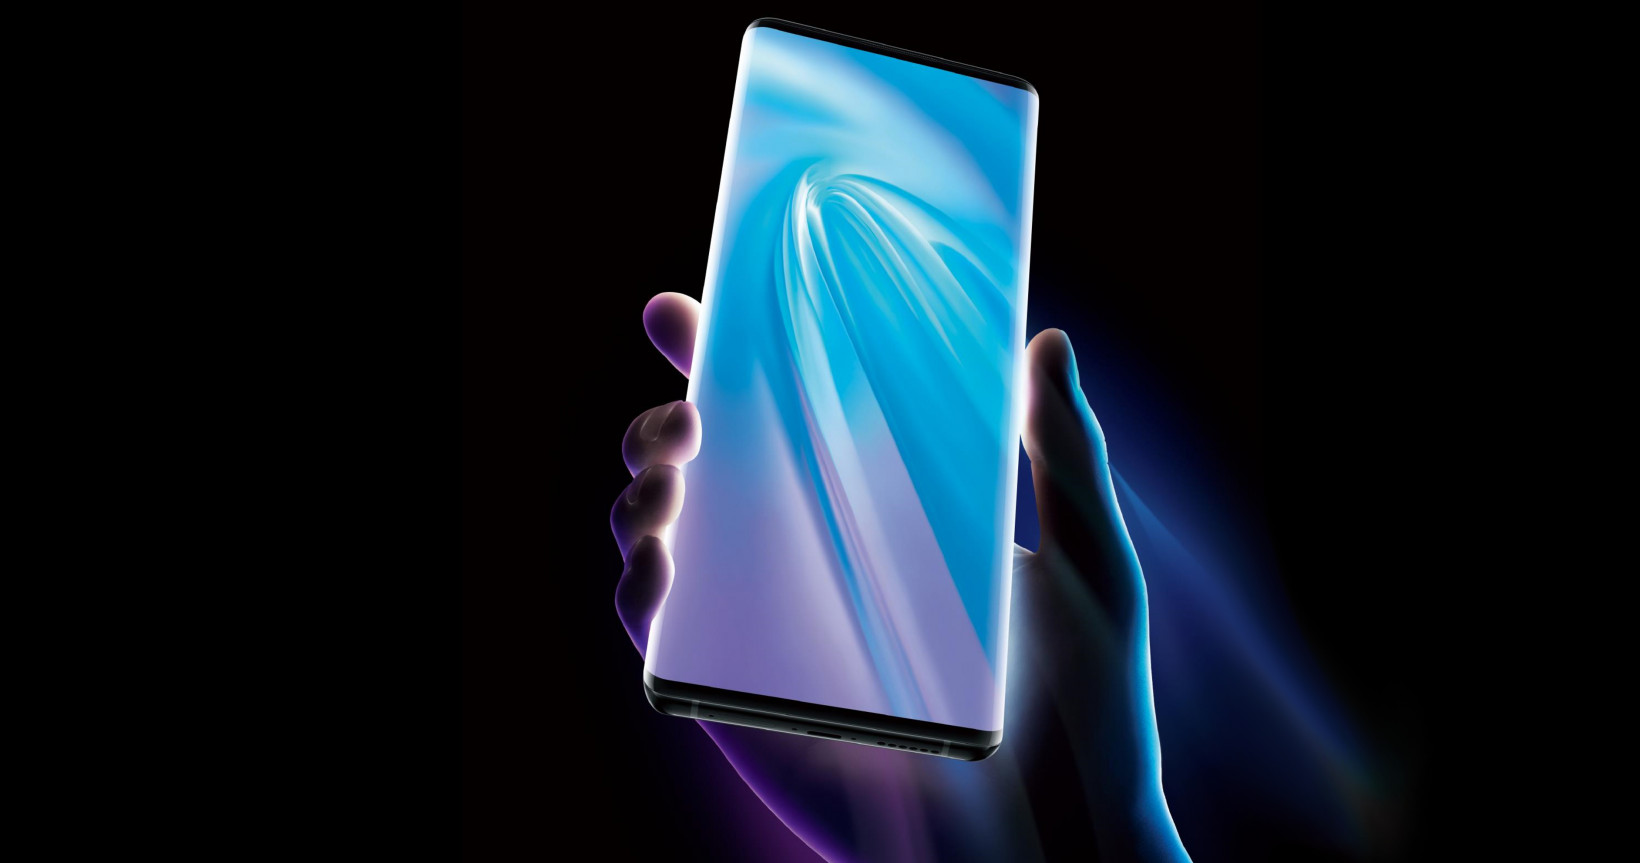 Vivo's top-of-the-line NEX 3 gets a bezel-less curved display and 64-megapixel camera